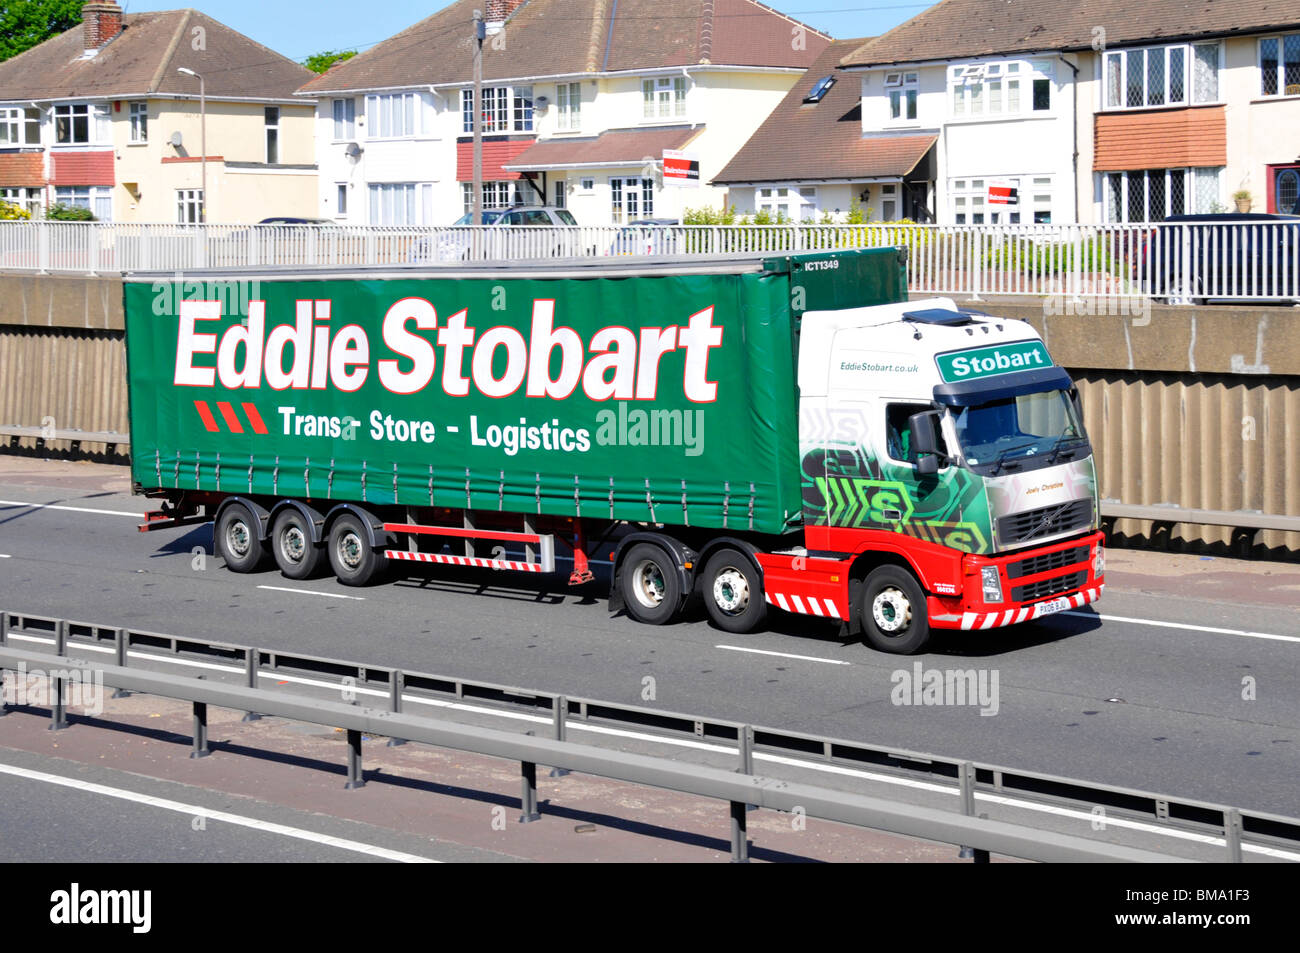 Houses close to A12 dual carriageway heavy noisy hgv road traffic with for sale sign boards - Stock Image